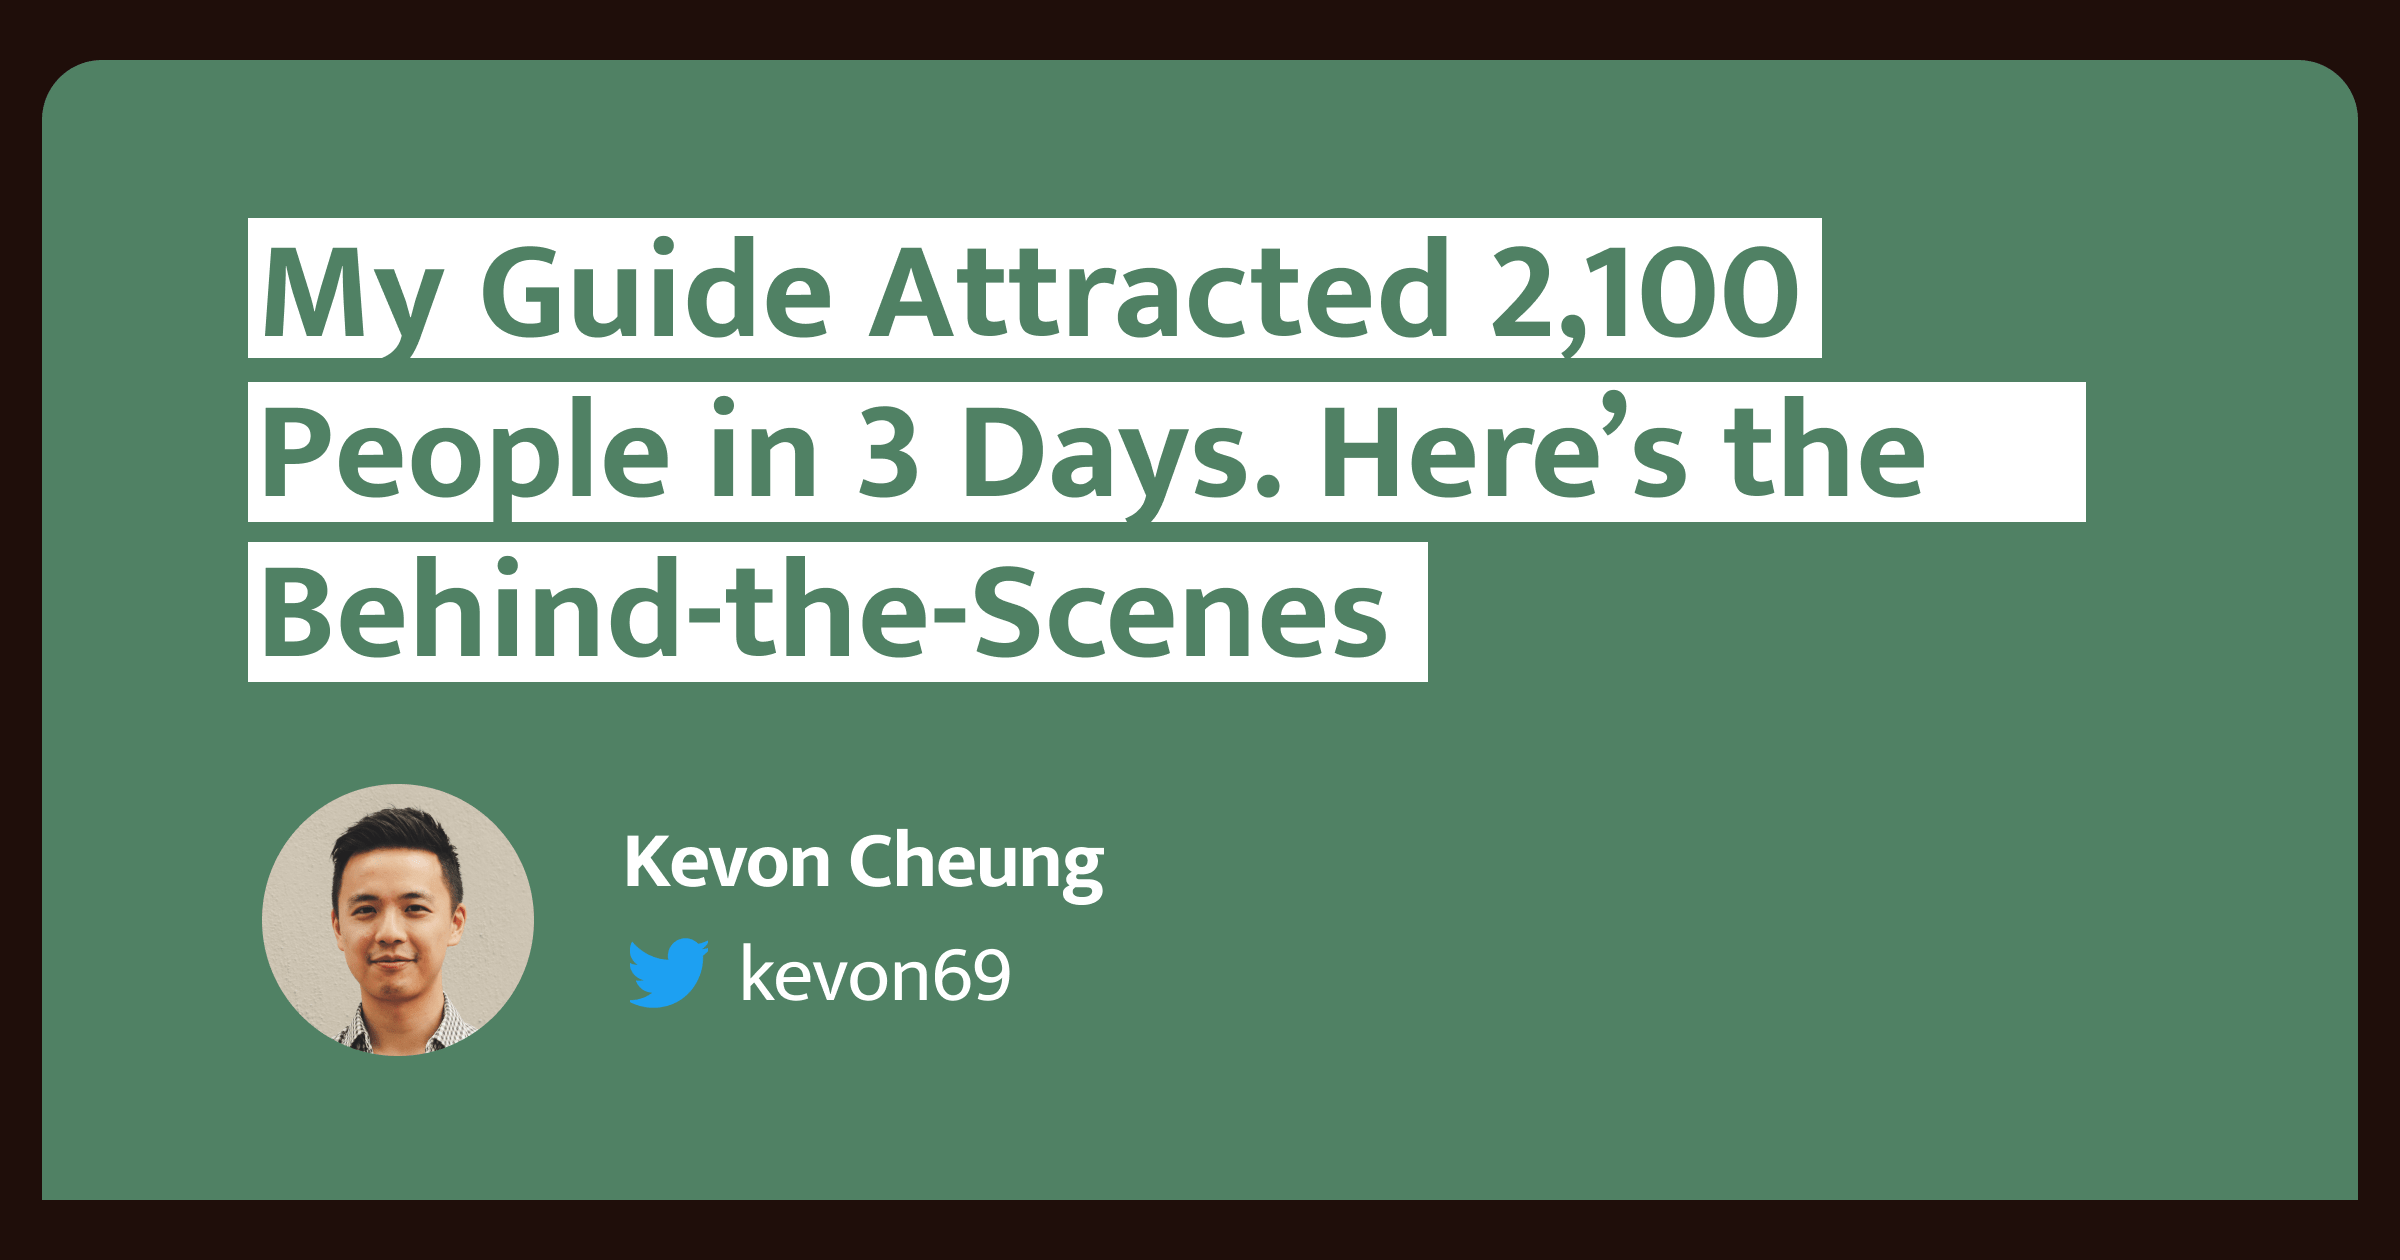 My Guide Attracted 2,100 People in 3 Days. Here's the Behind-the-Scenes